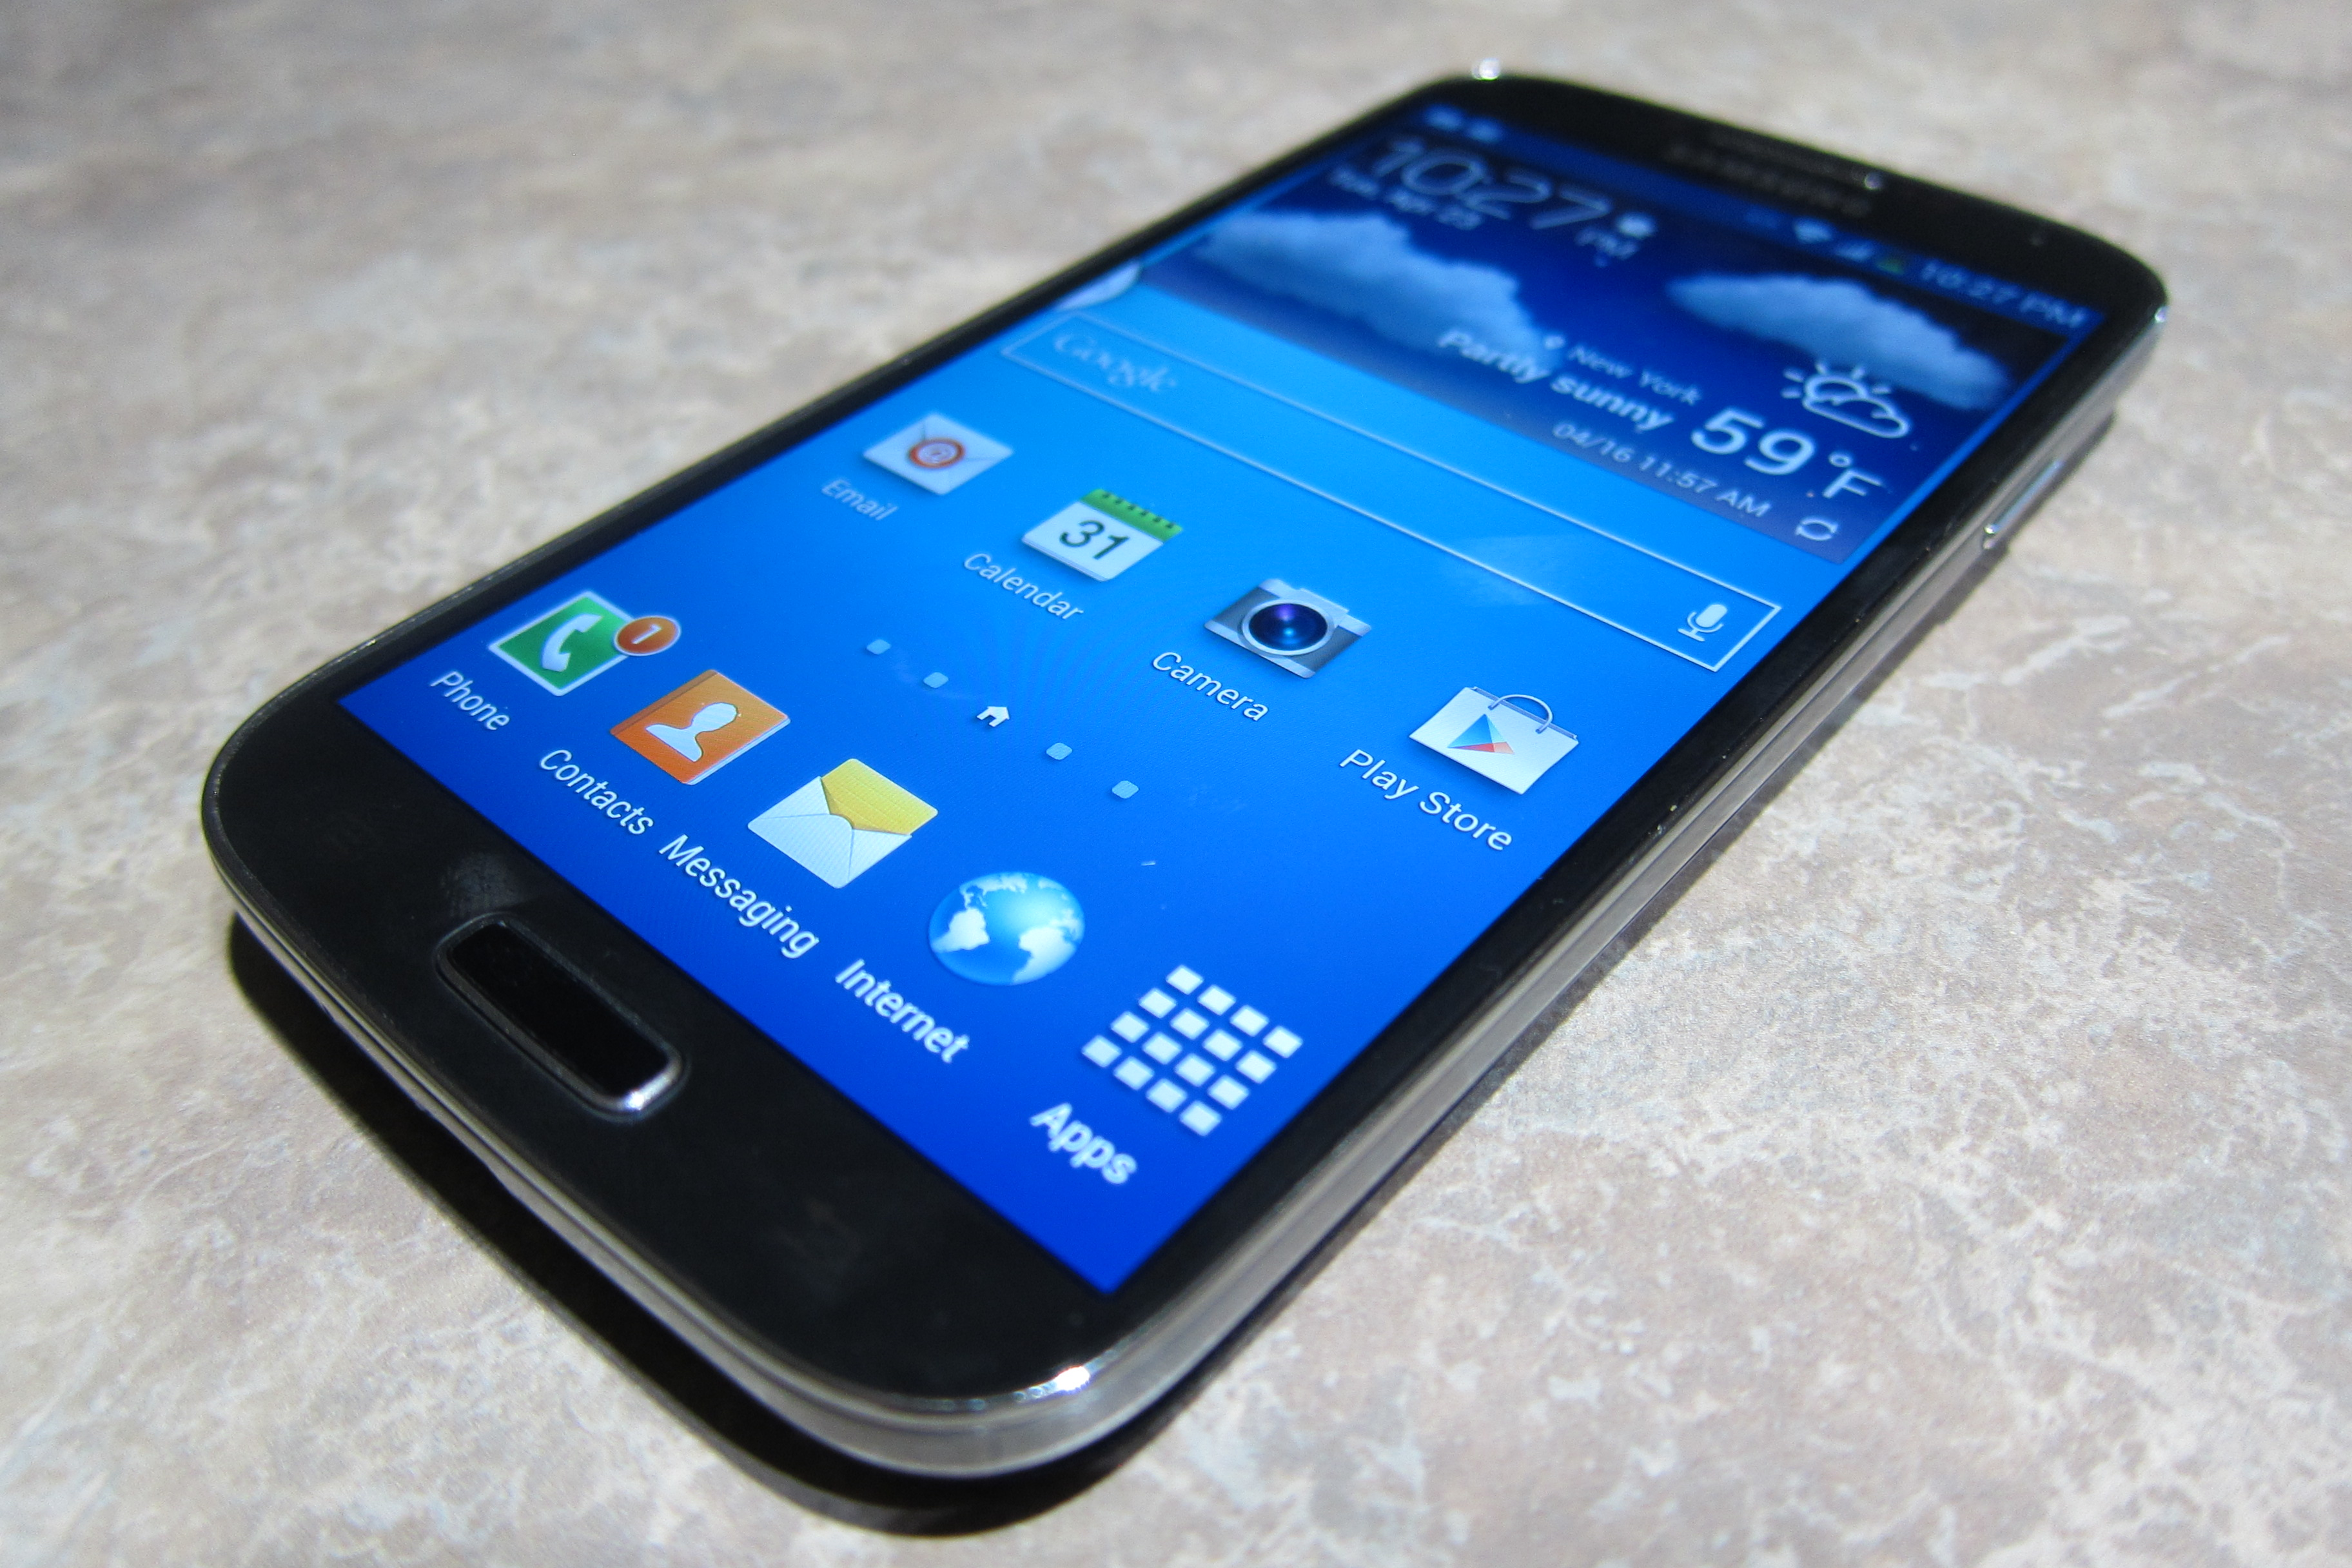 Galaxy S 4 featured